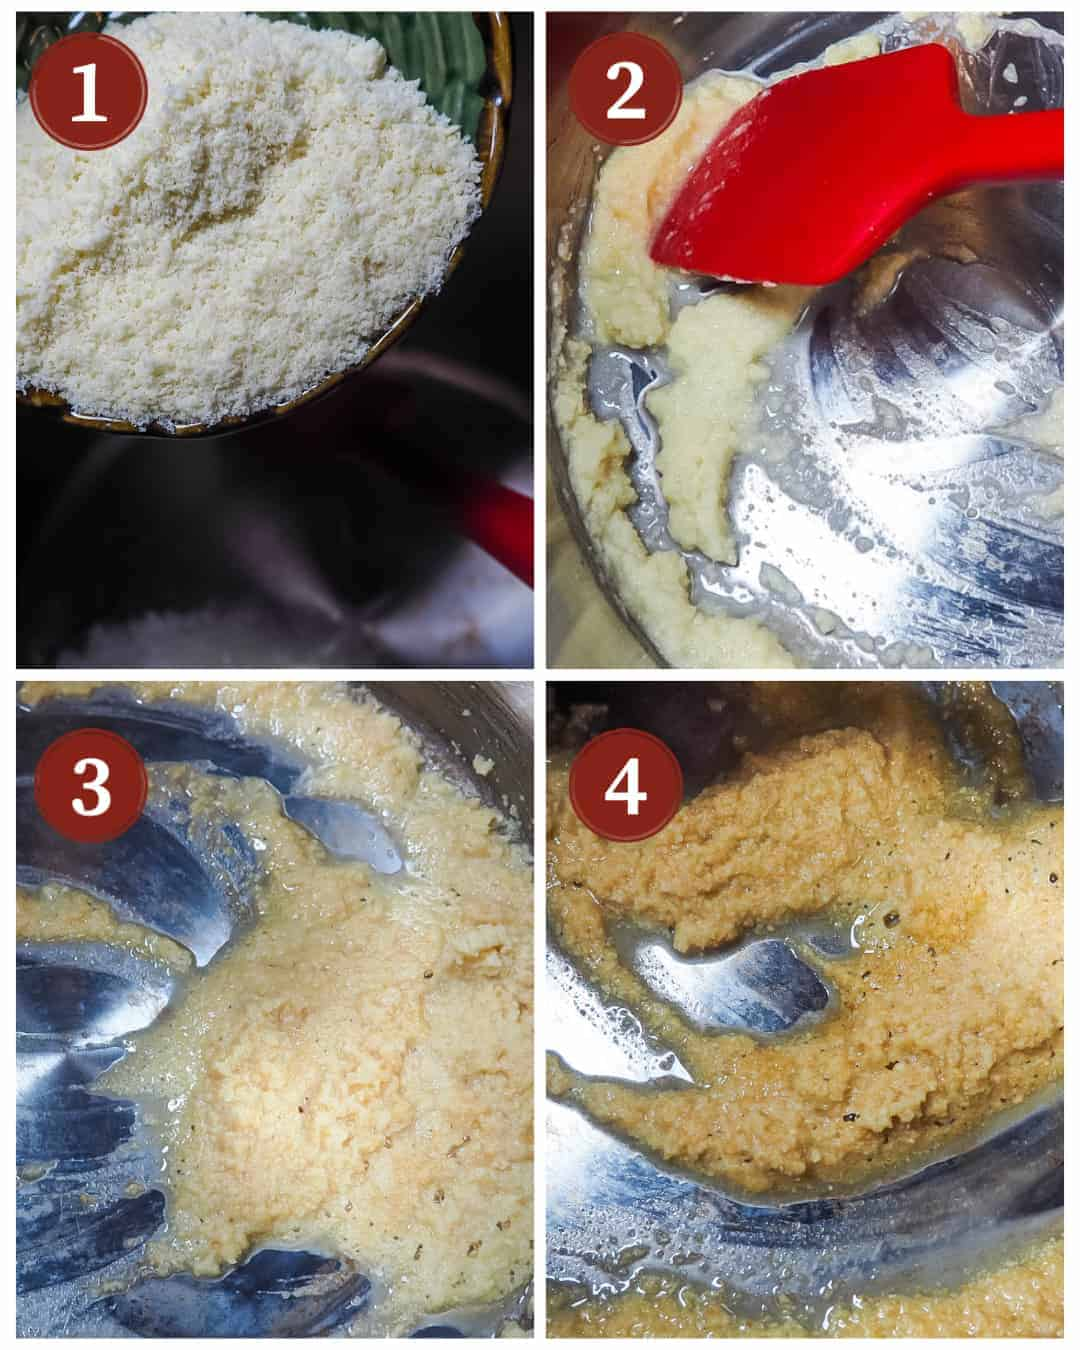 A collage of images showing the steps to perfectly cook a paleo roux for gumbo.